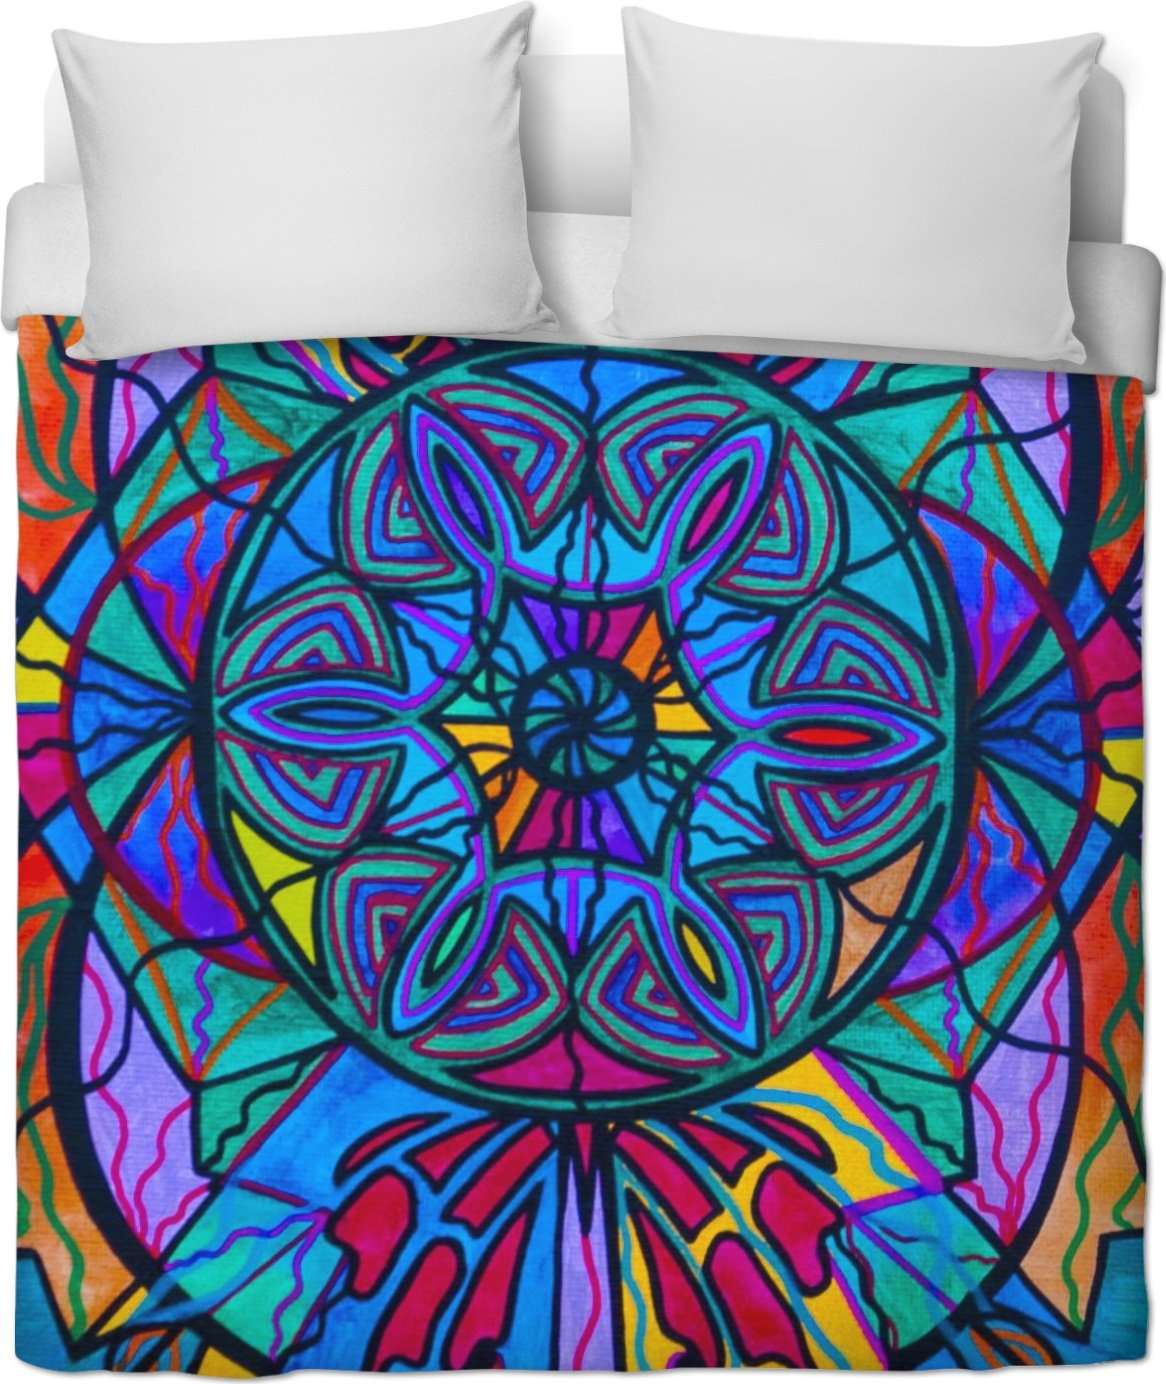 Poised Assurance - Duvet Cover